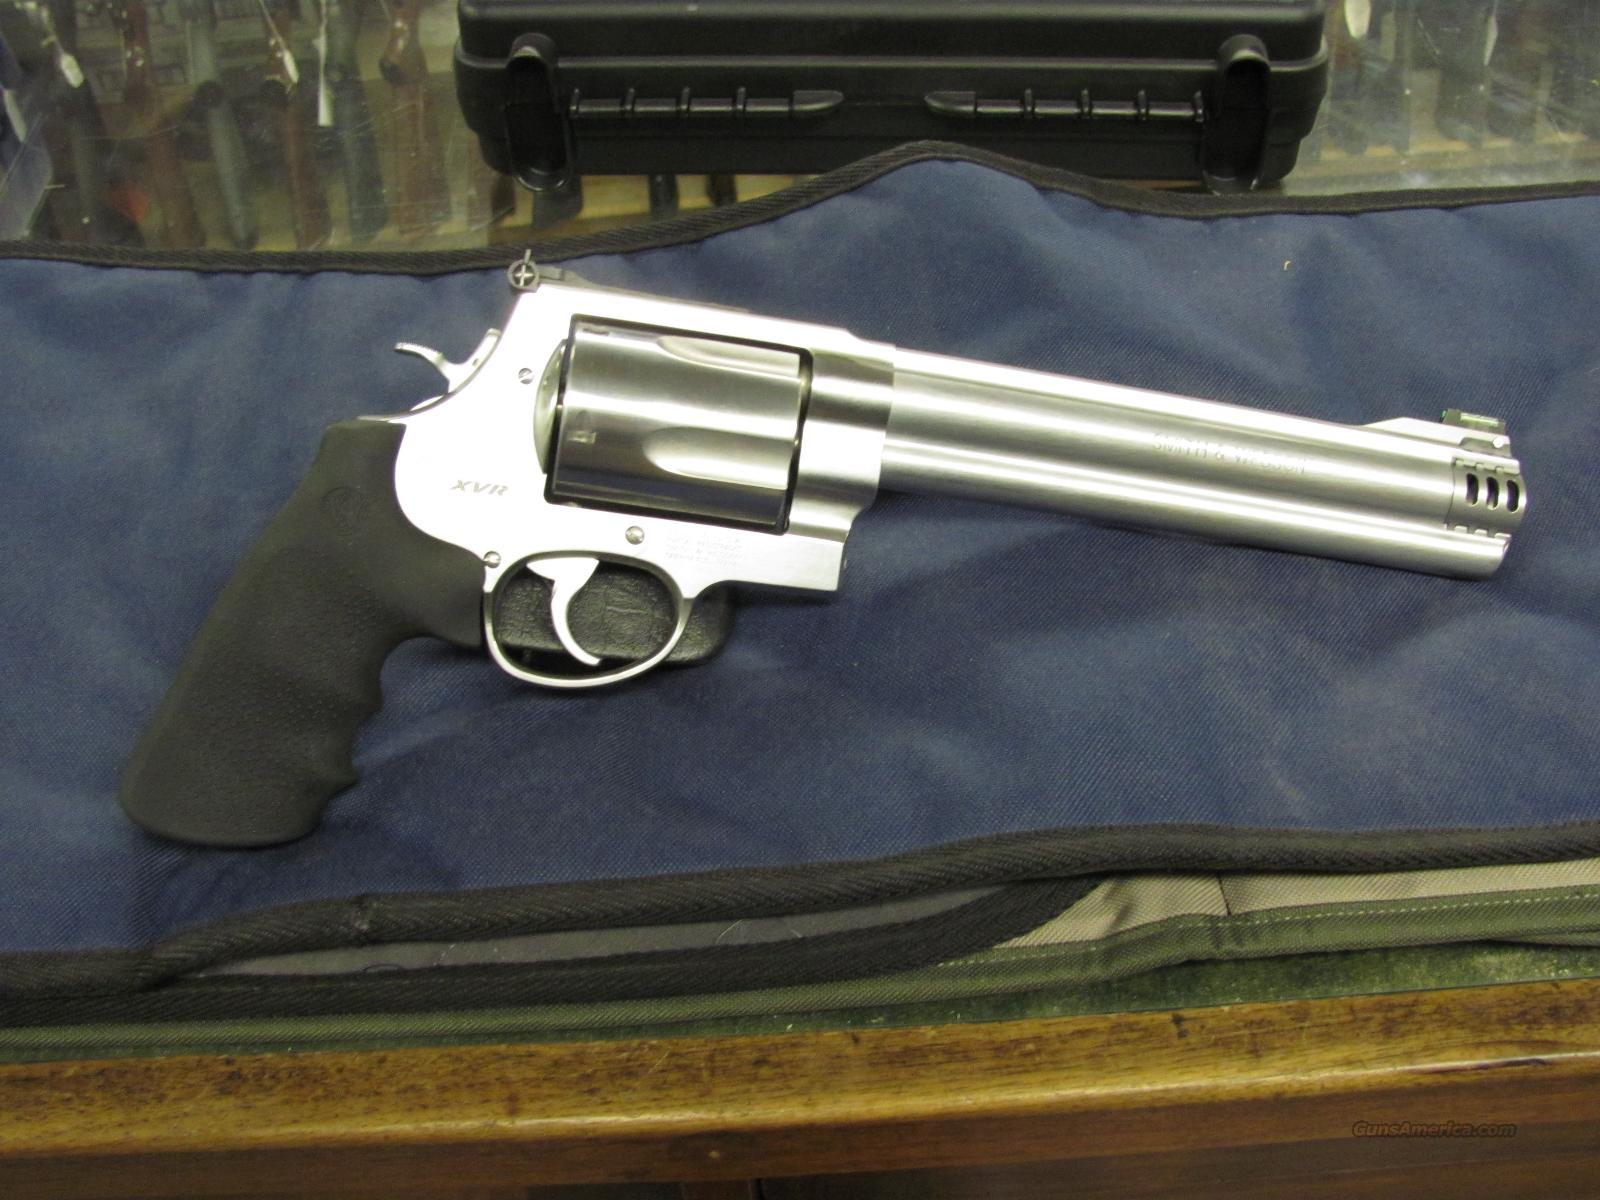 Smith & Wesson Model 460 XVR 8 3/8 inch  **NEW**  Guns > Pistols > Smith & Wesson Revolvers > Full Frame Revolver